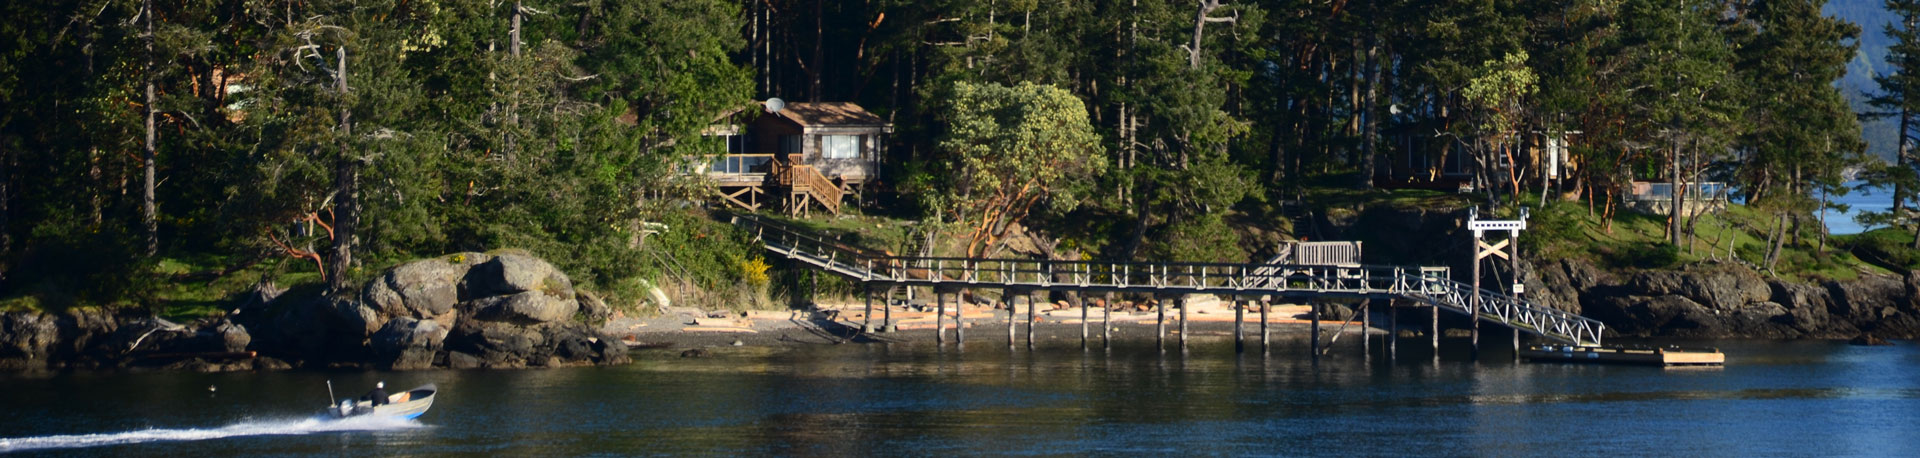 A house tucked in the trees on an island with a private boat dock